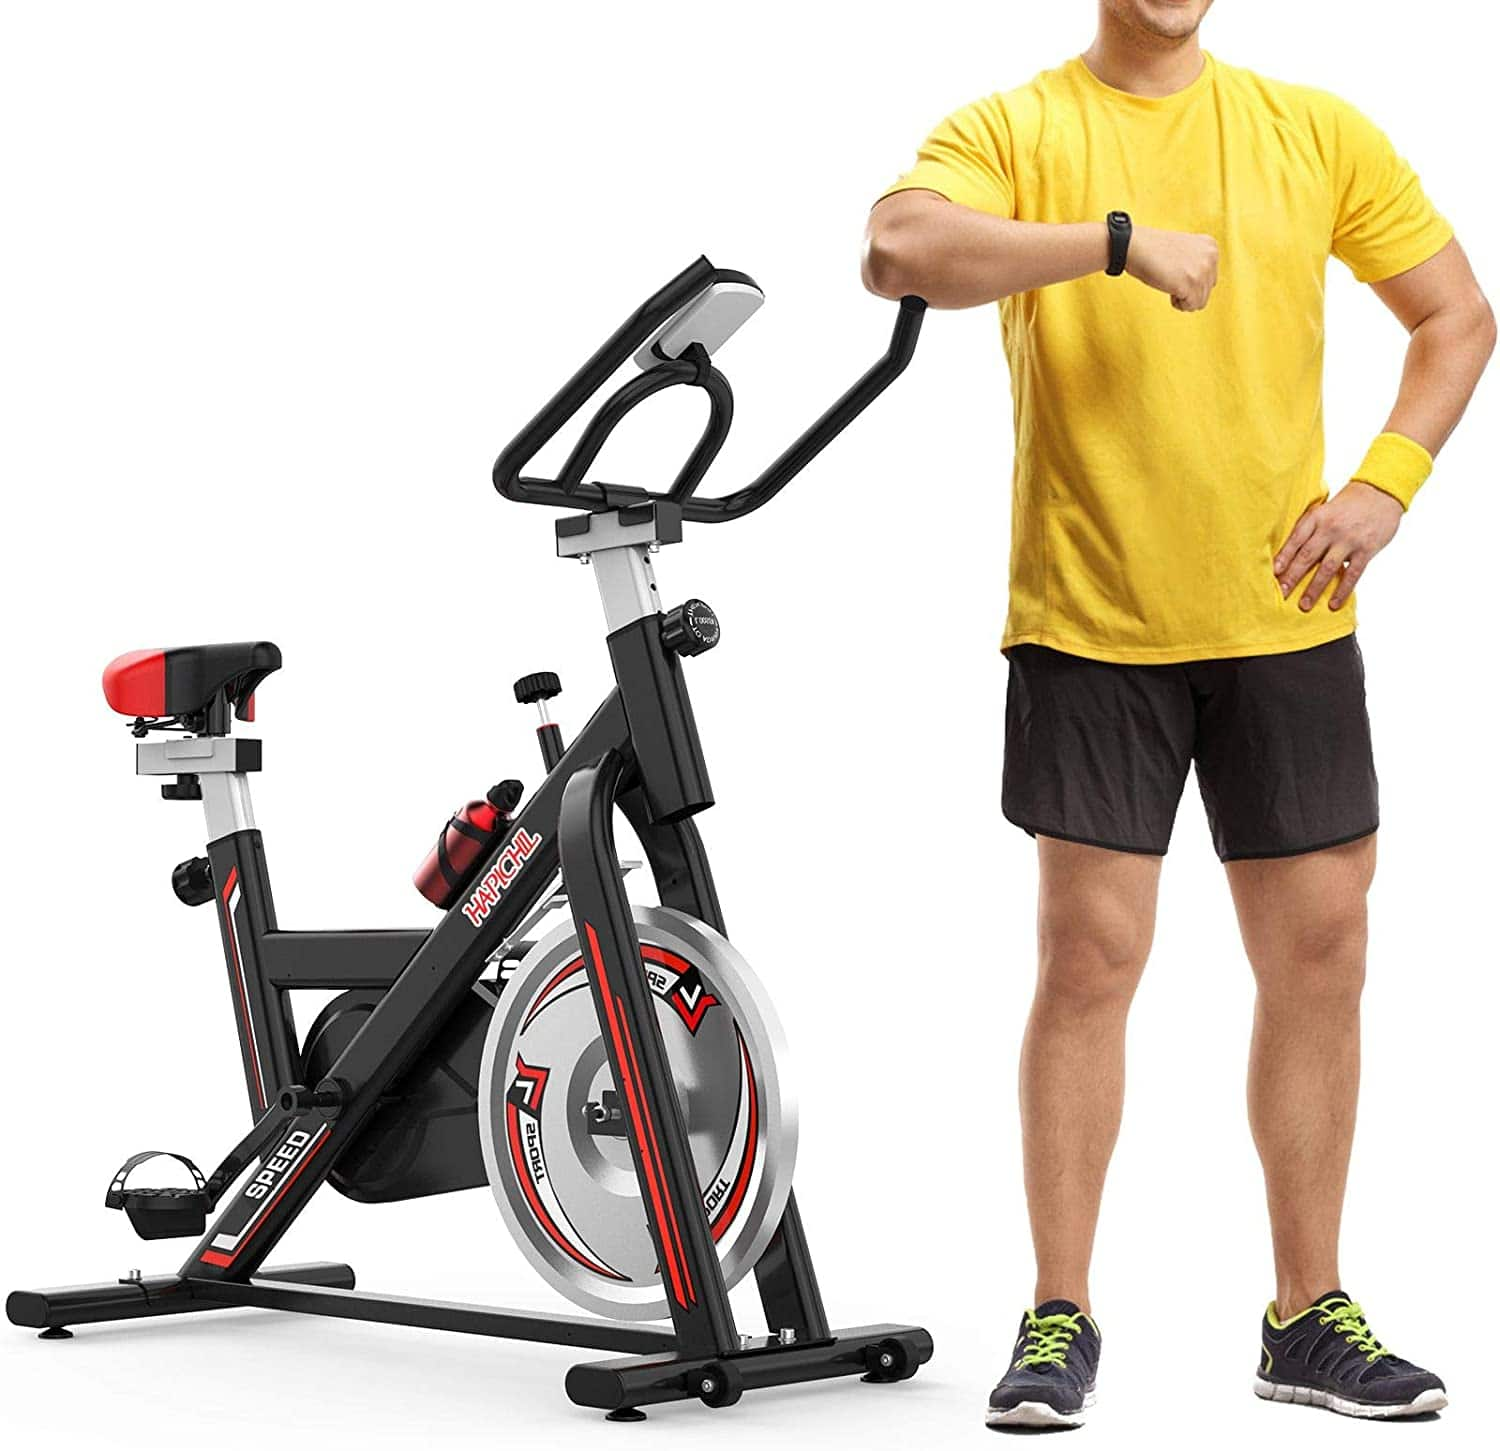 HAPICHIL Exercise Stationary Bike, Adjustable Seat + LCD Display $149.97